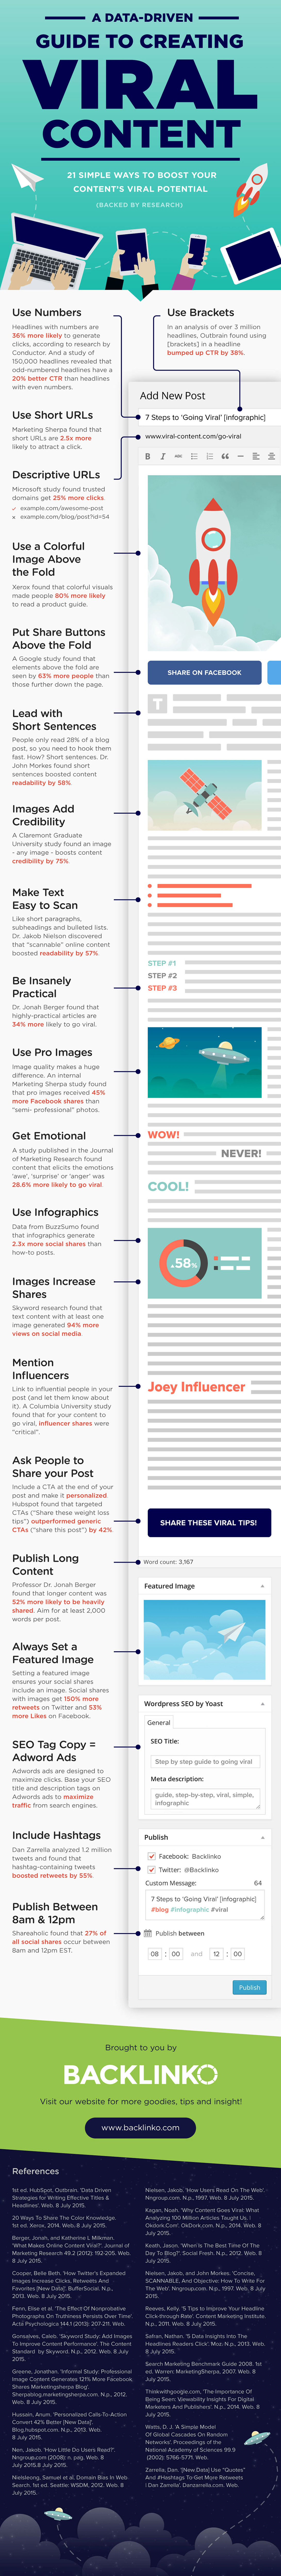 How to Make a Blog post Go Viral Infographic